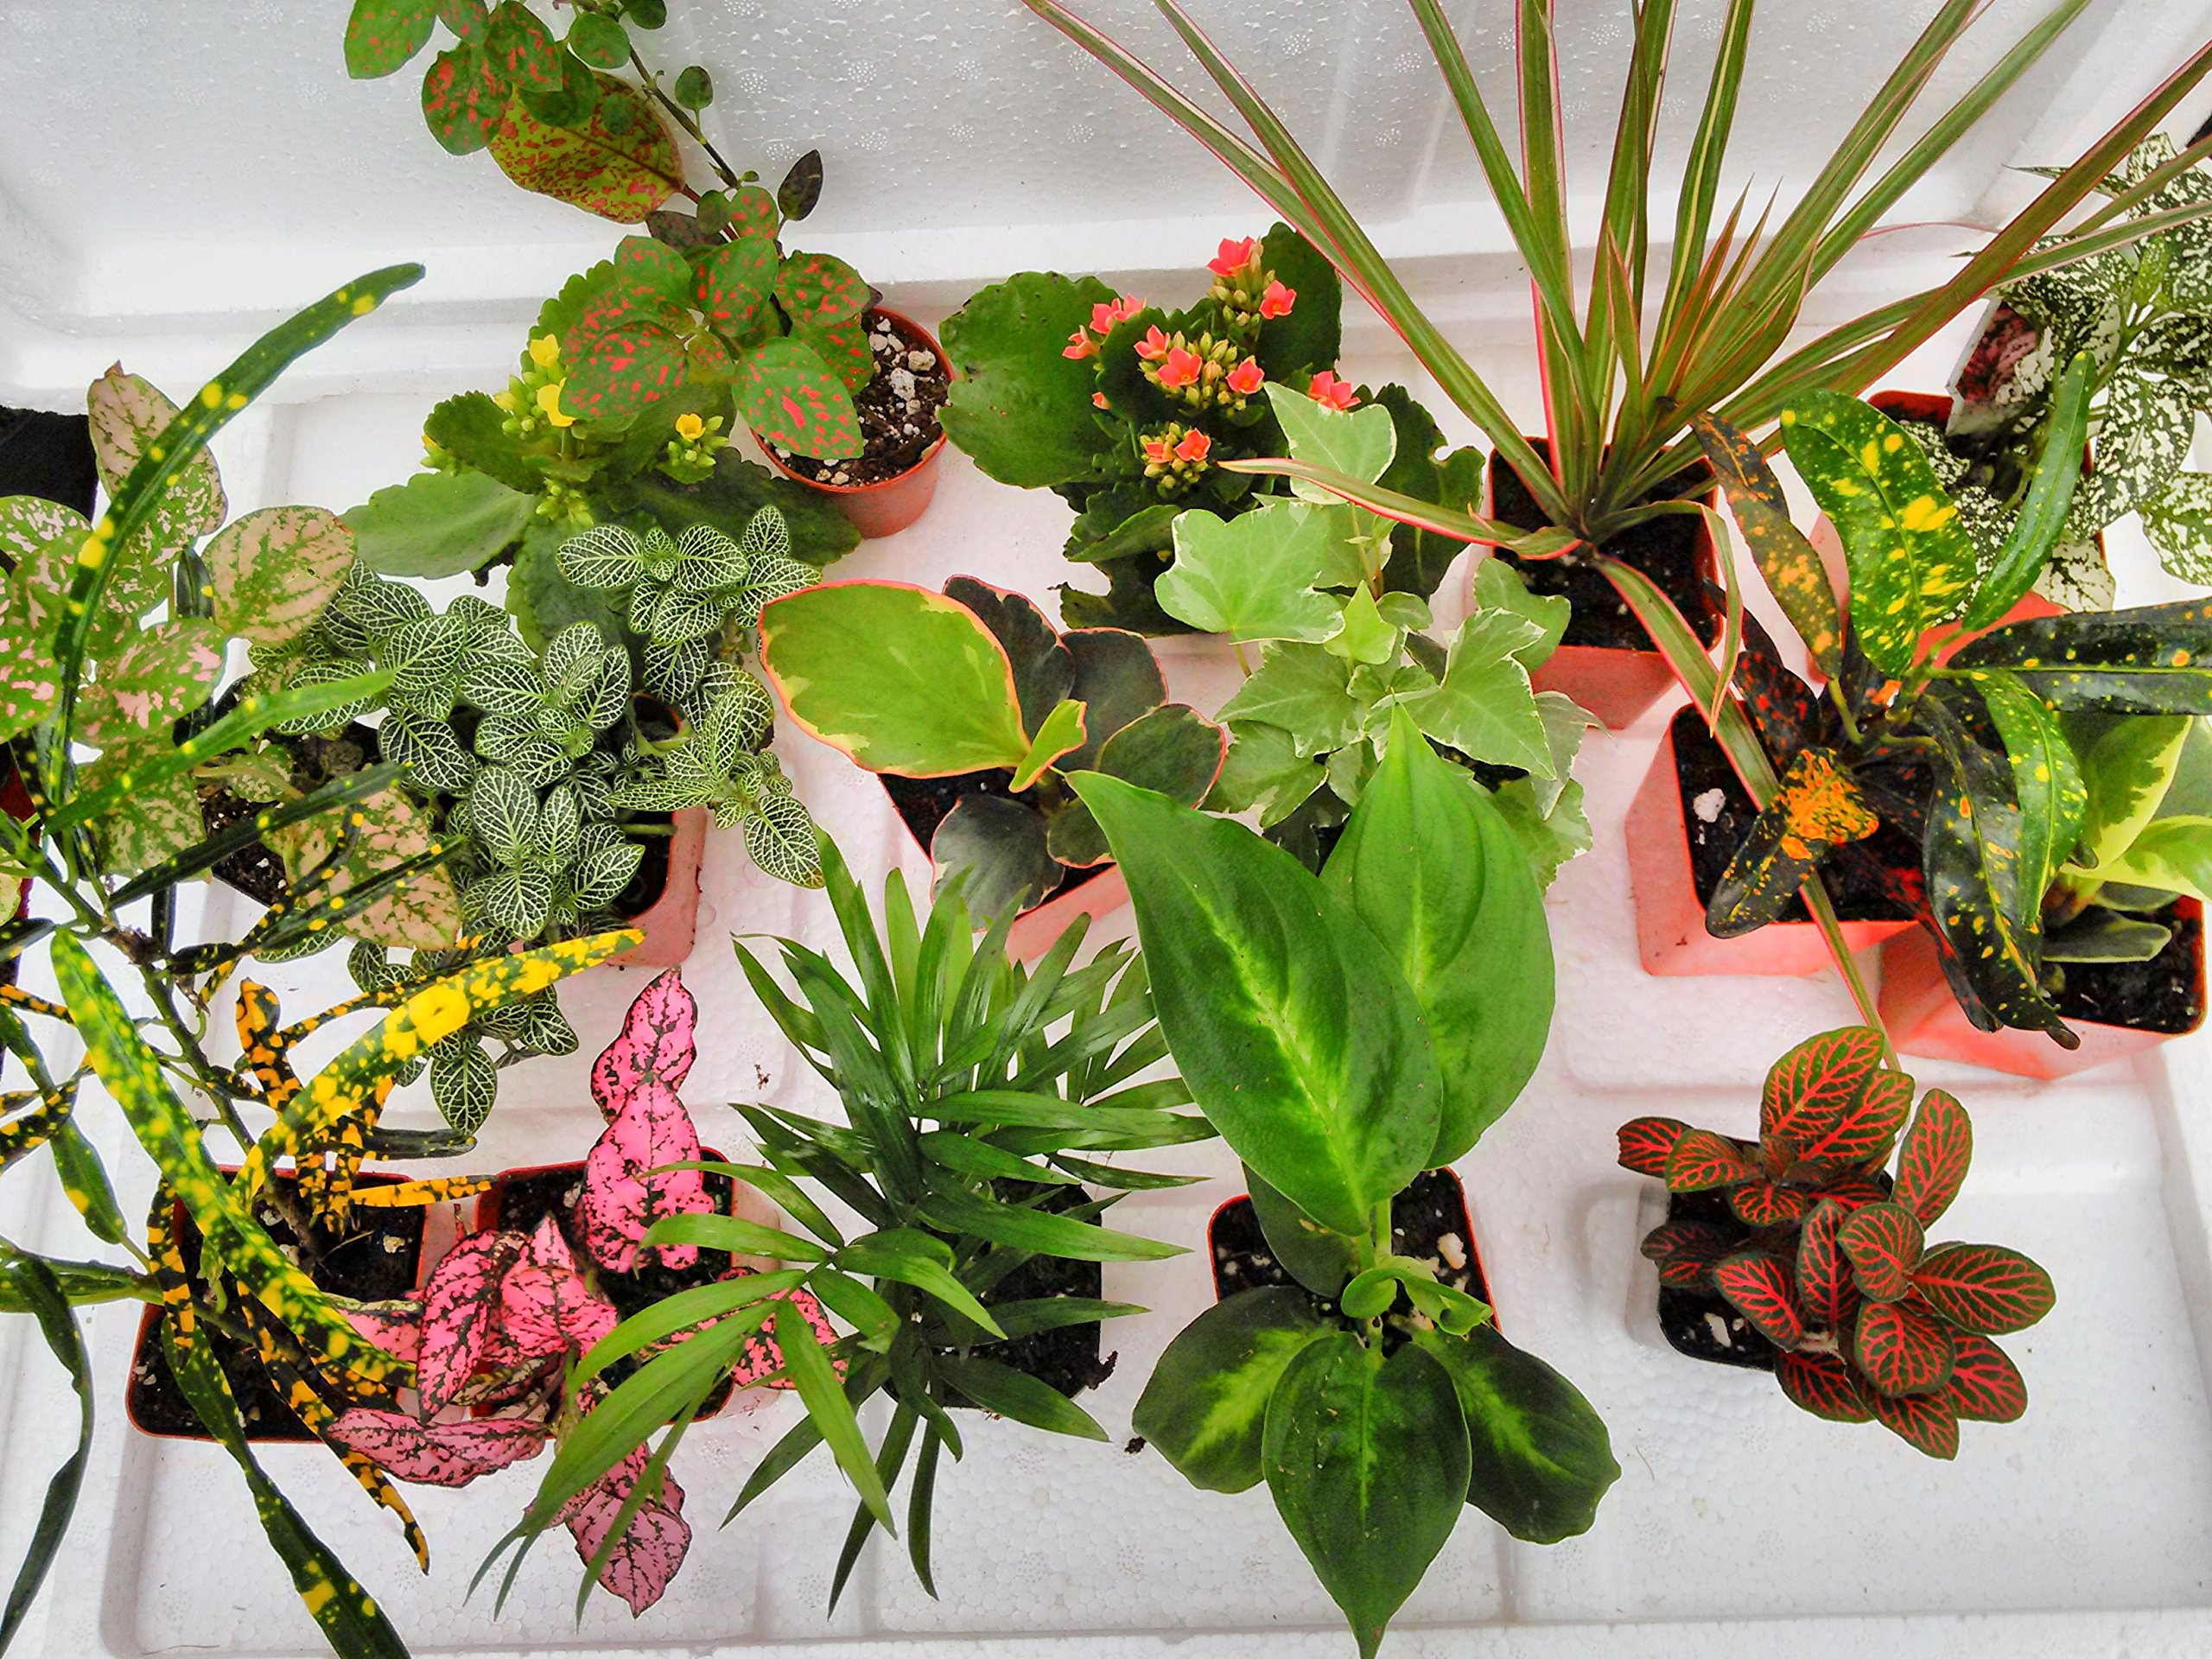 Terrarium & Fairy Garden Plants - 8 Plants in 2.5 (Is Approximately 4 to 6 Inches Height of the Plant) by JM BAMBOO (Image #2)